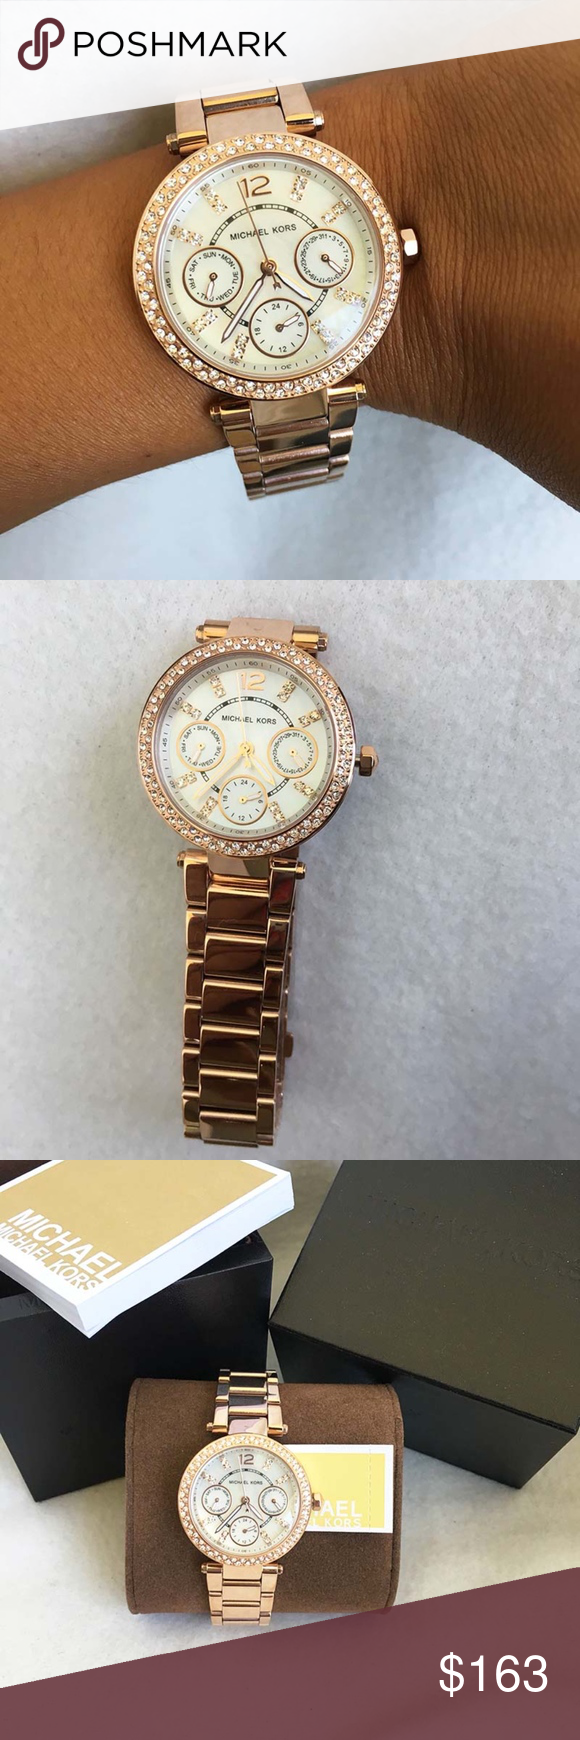 ce3ecef2af0a New  amp  Authentic Michael Kors Women s Watch MK5616 100% Authentic and  Brand New in